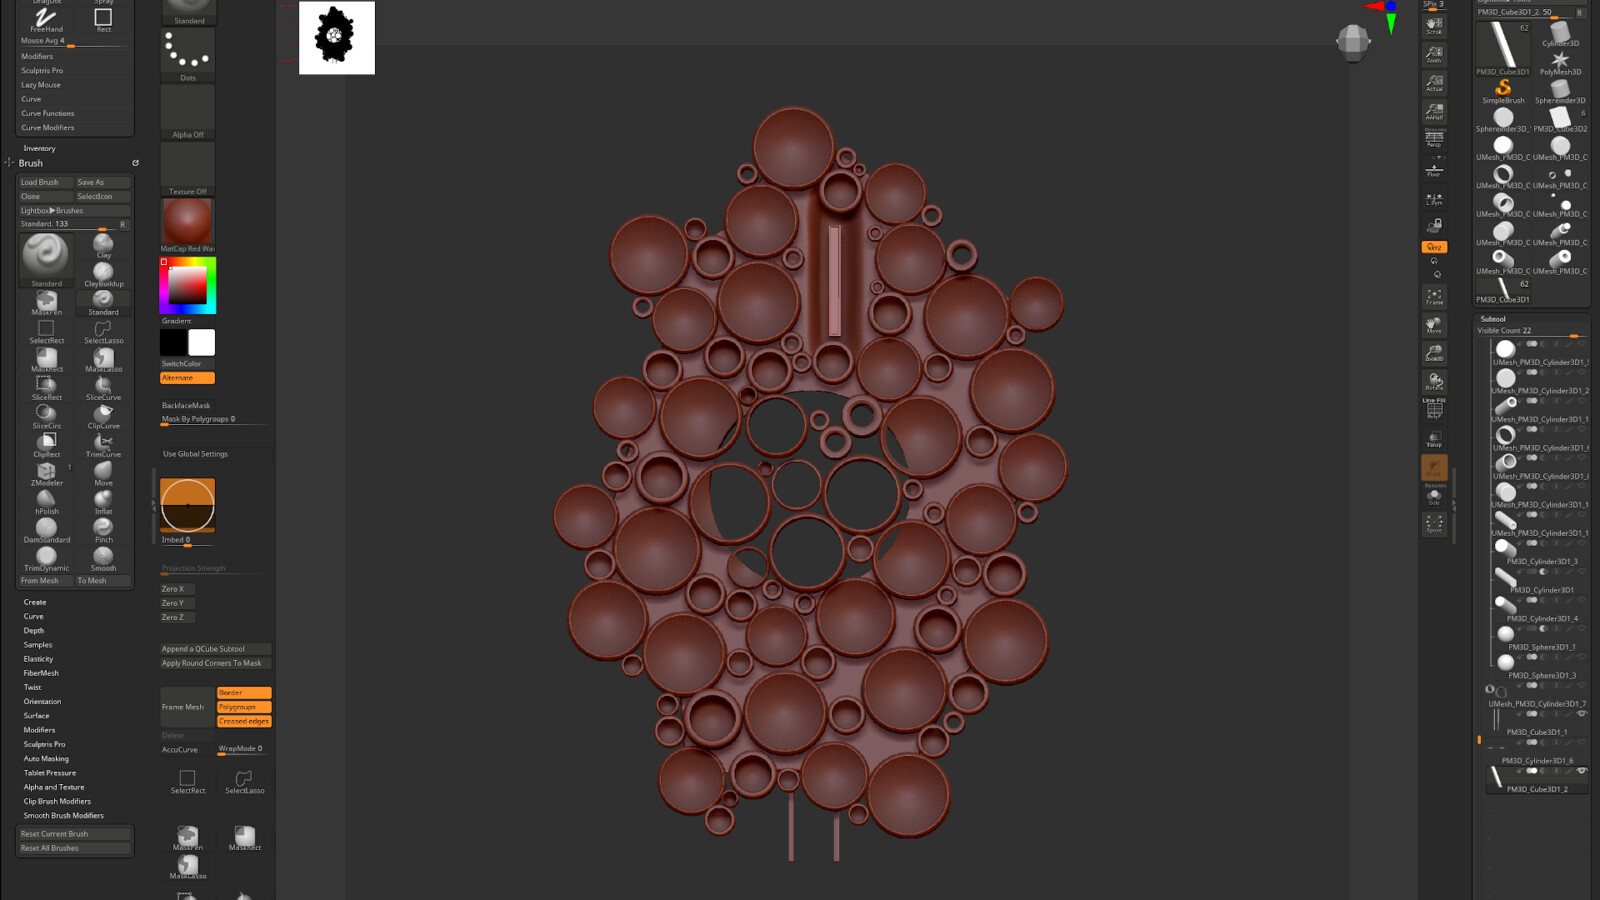 Central structure modeled in Zbrush using dynamesh and IMM brushes I created from the repeated patterns.